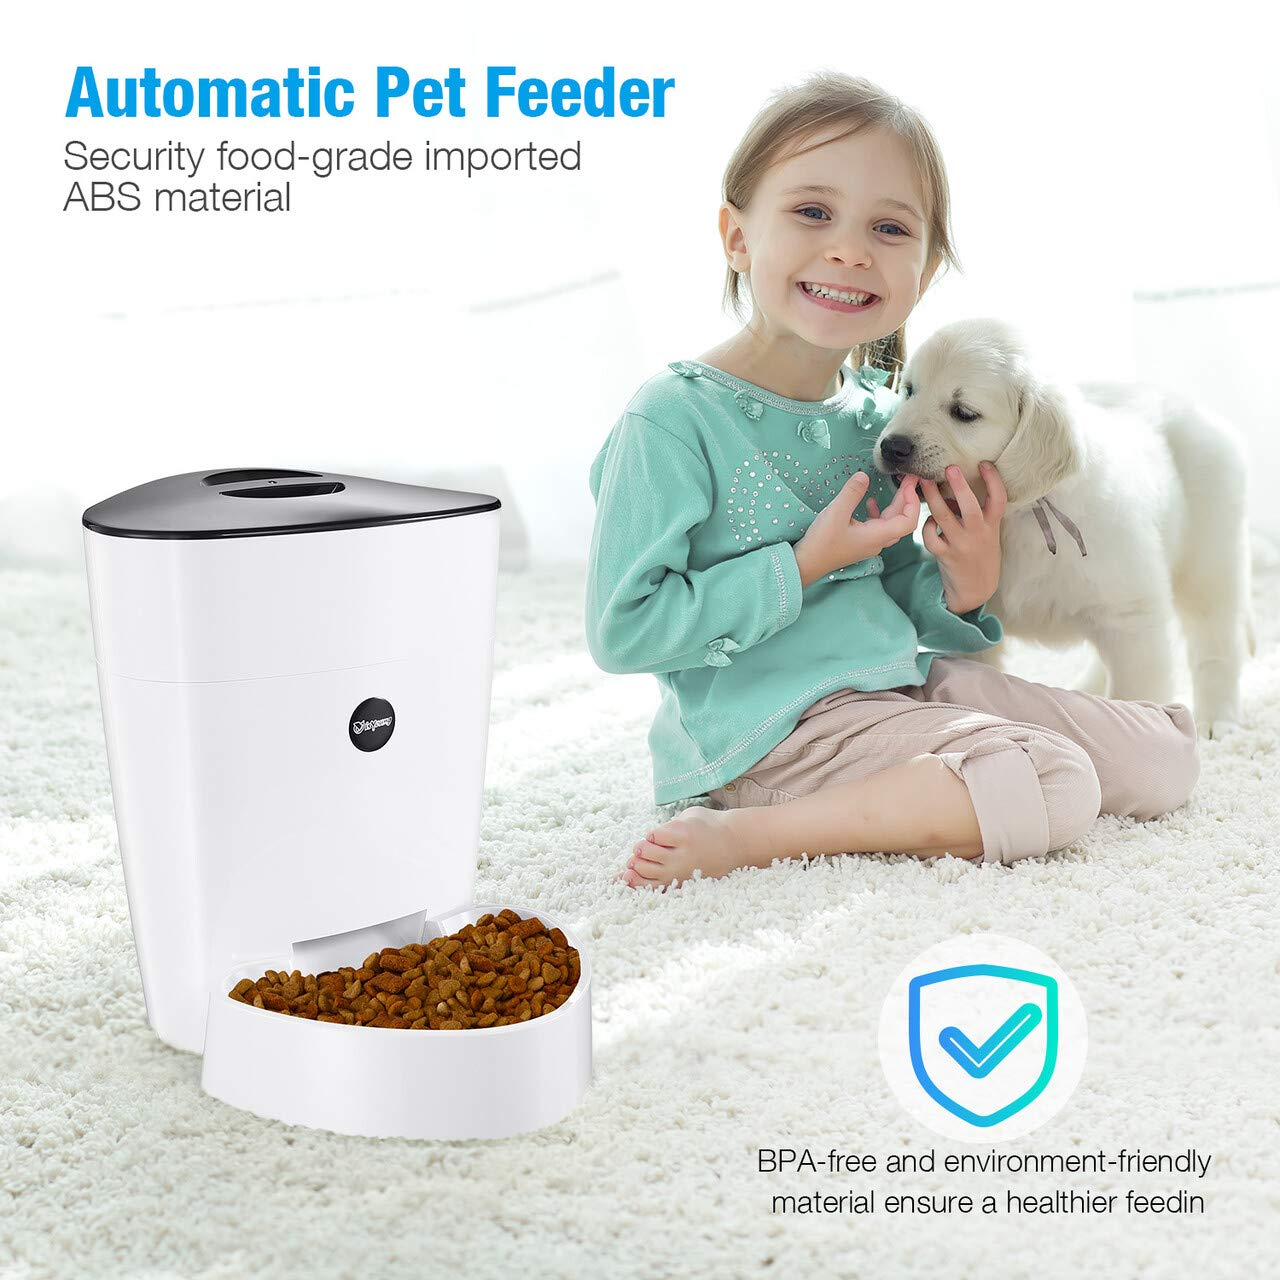 isYoung Automatic Cat Feeder, 4L Smart Pet Feeder for Cat & Dog - 6 Meal, LCD Display with Timer Programmable, Portion Control - Battery/Plug-in Power